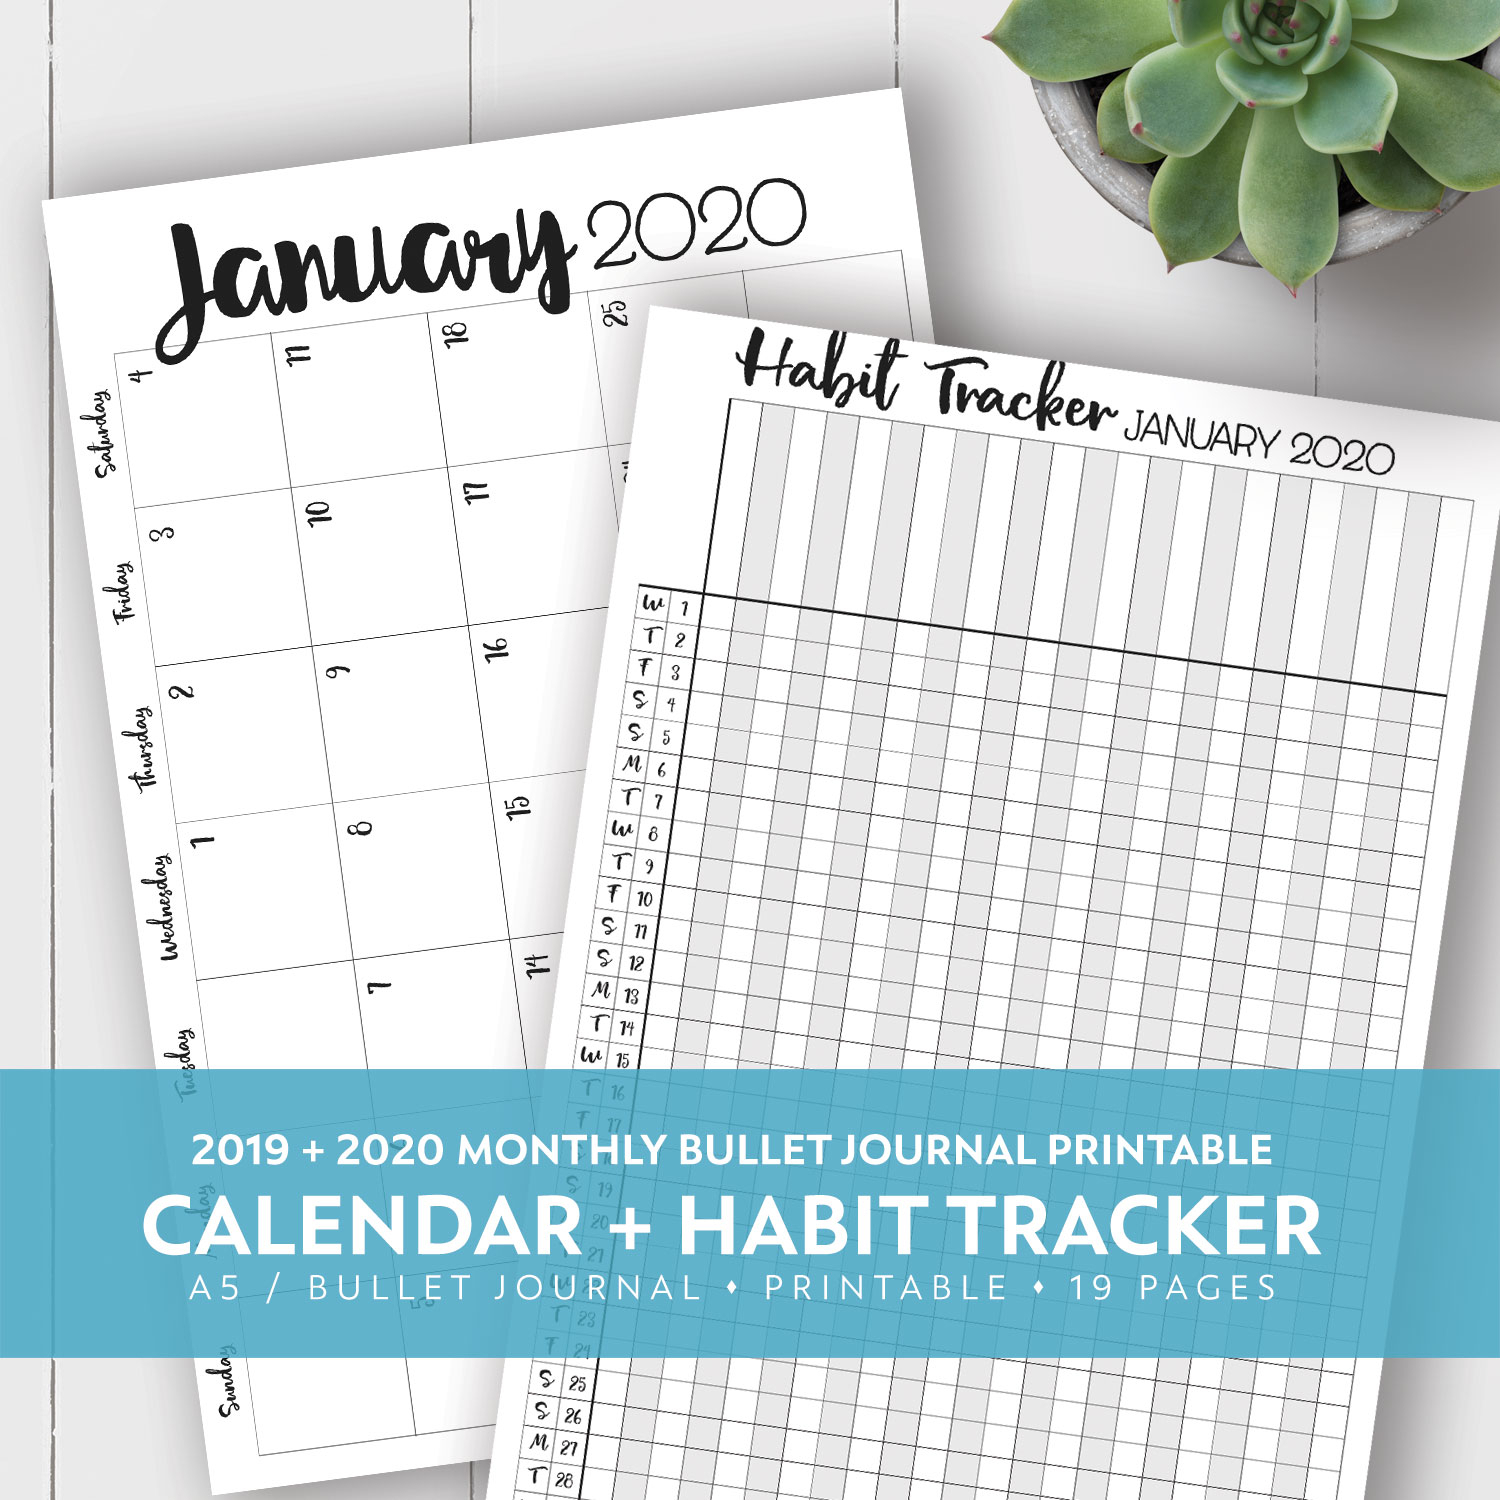 2019 + 2020 Monthly Printable Calendar + Habit Tracker Kit within Printable 8.5 X 11 2020 Calendar